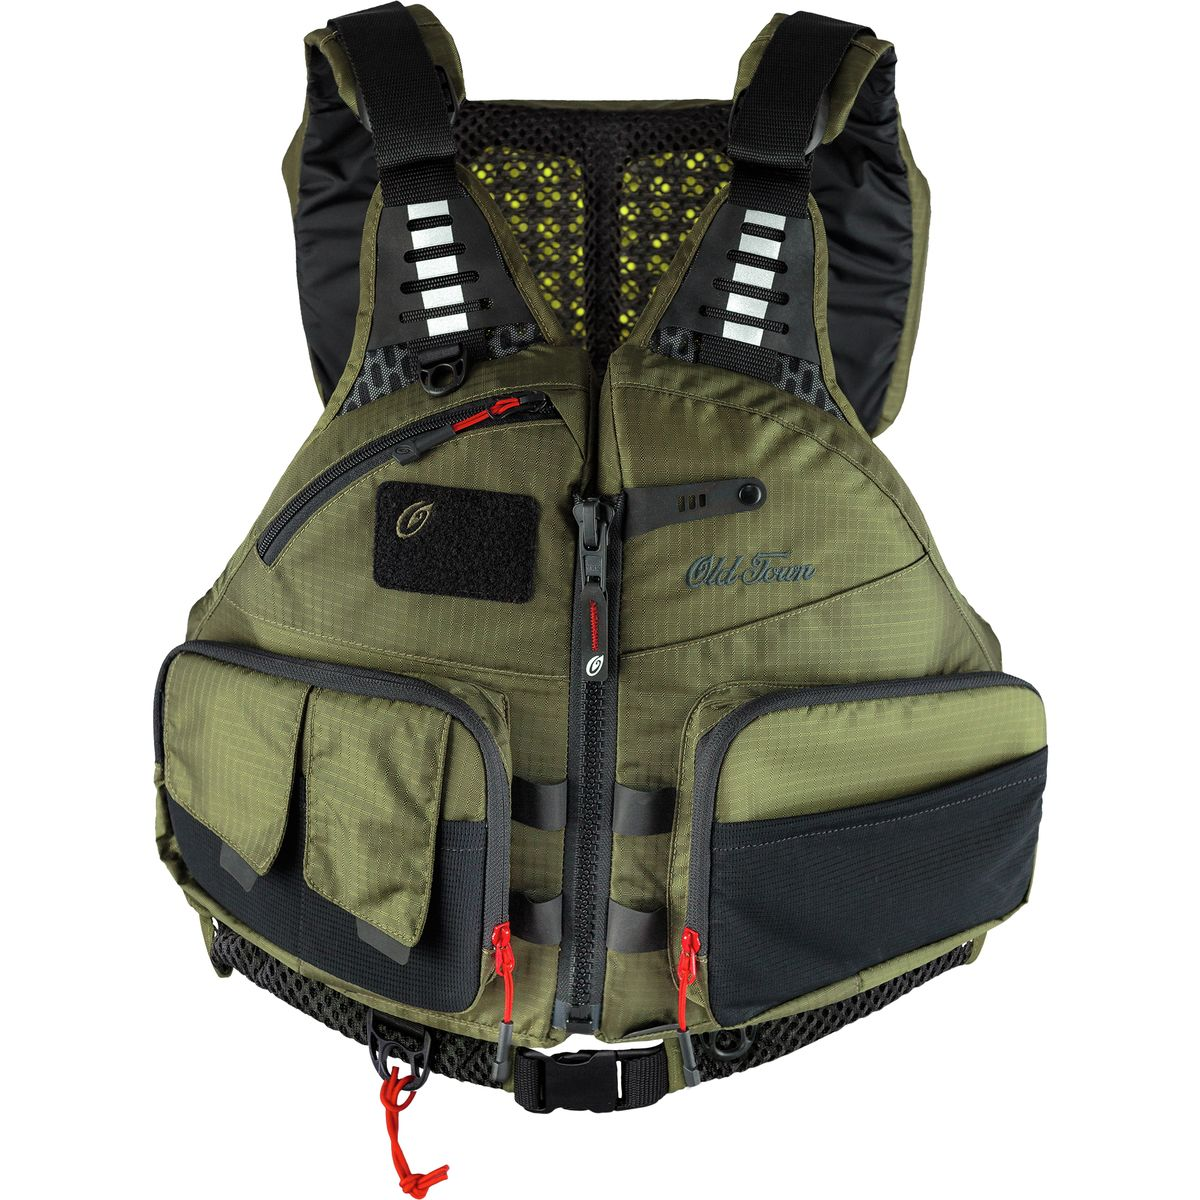 photo: Old Town Lure Angler life jacket/pfd